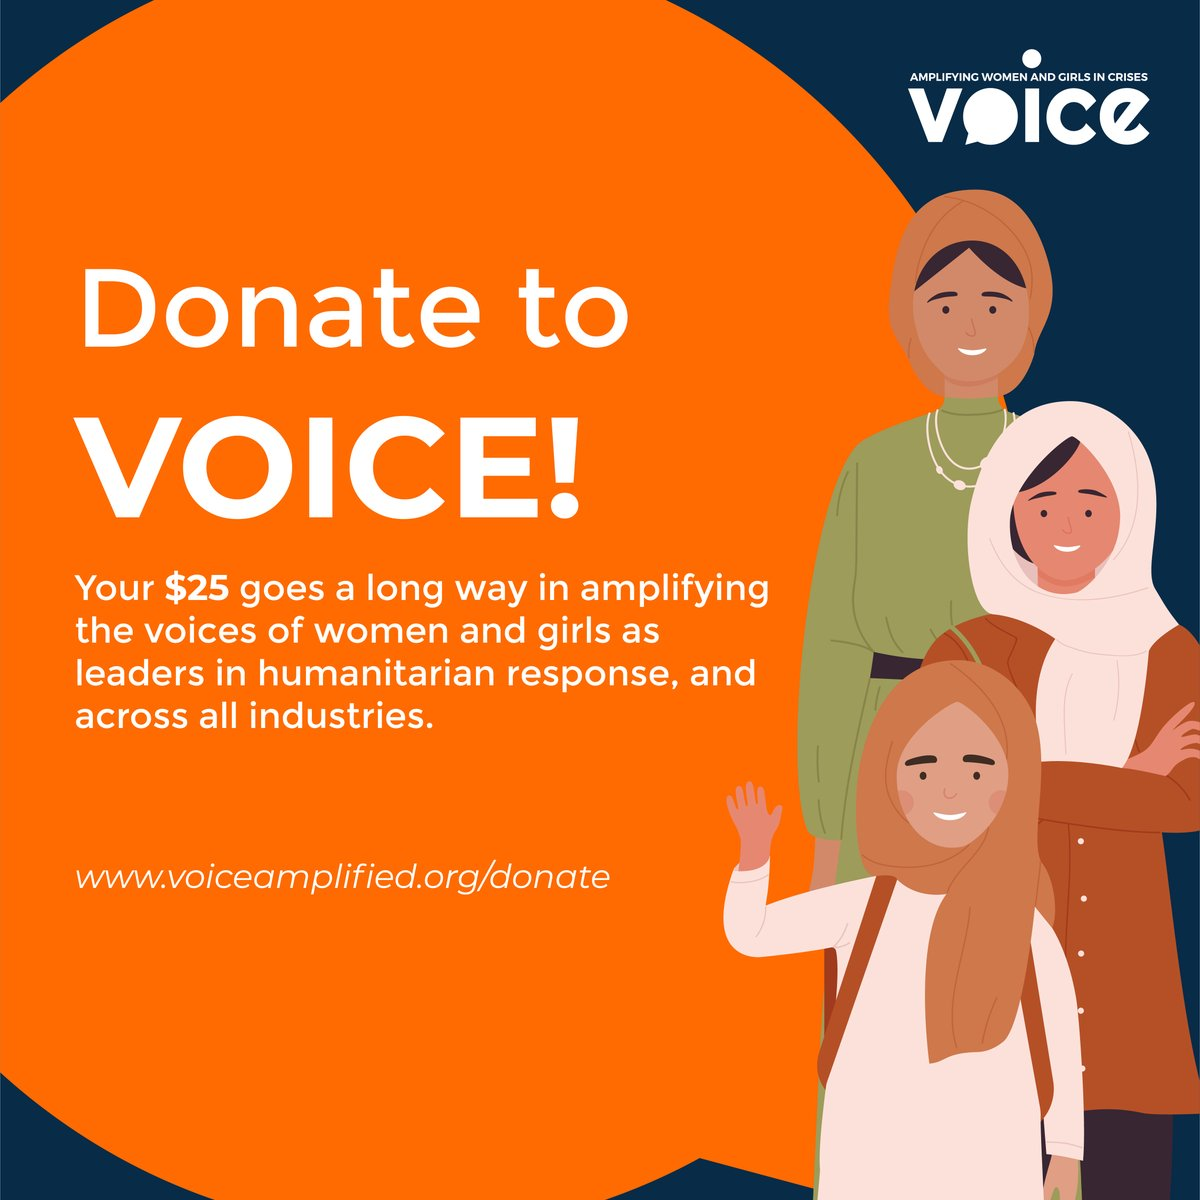 VOICE requires private donations to continue our work of amplifying the voices of women and girls around the world. Become a giving partner of VOICE this #GivingTuesday. Gifts of any amount are truly appreciated!  #AmplifyHerVoice #LOUDER #AreYouListening #BelieveSurvivors